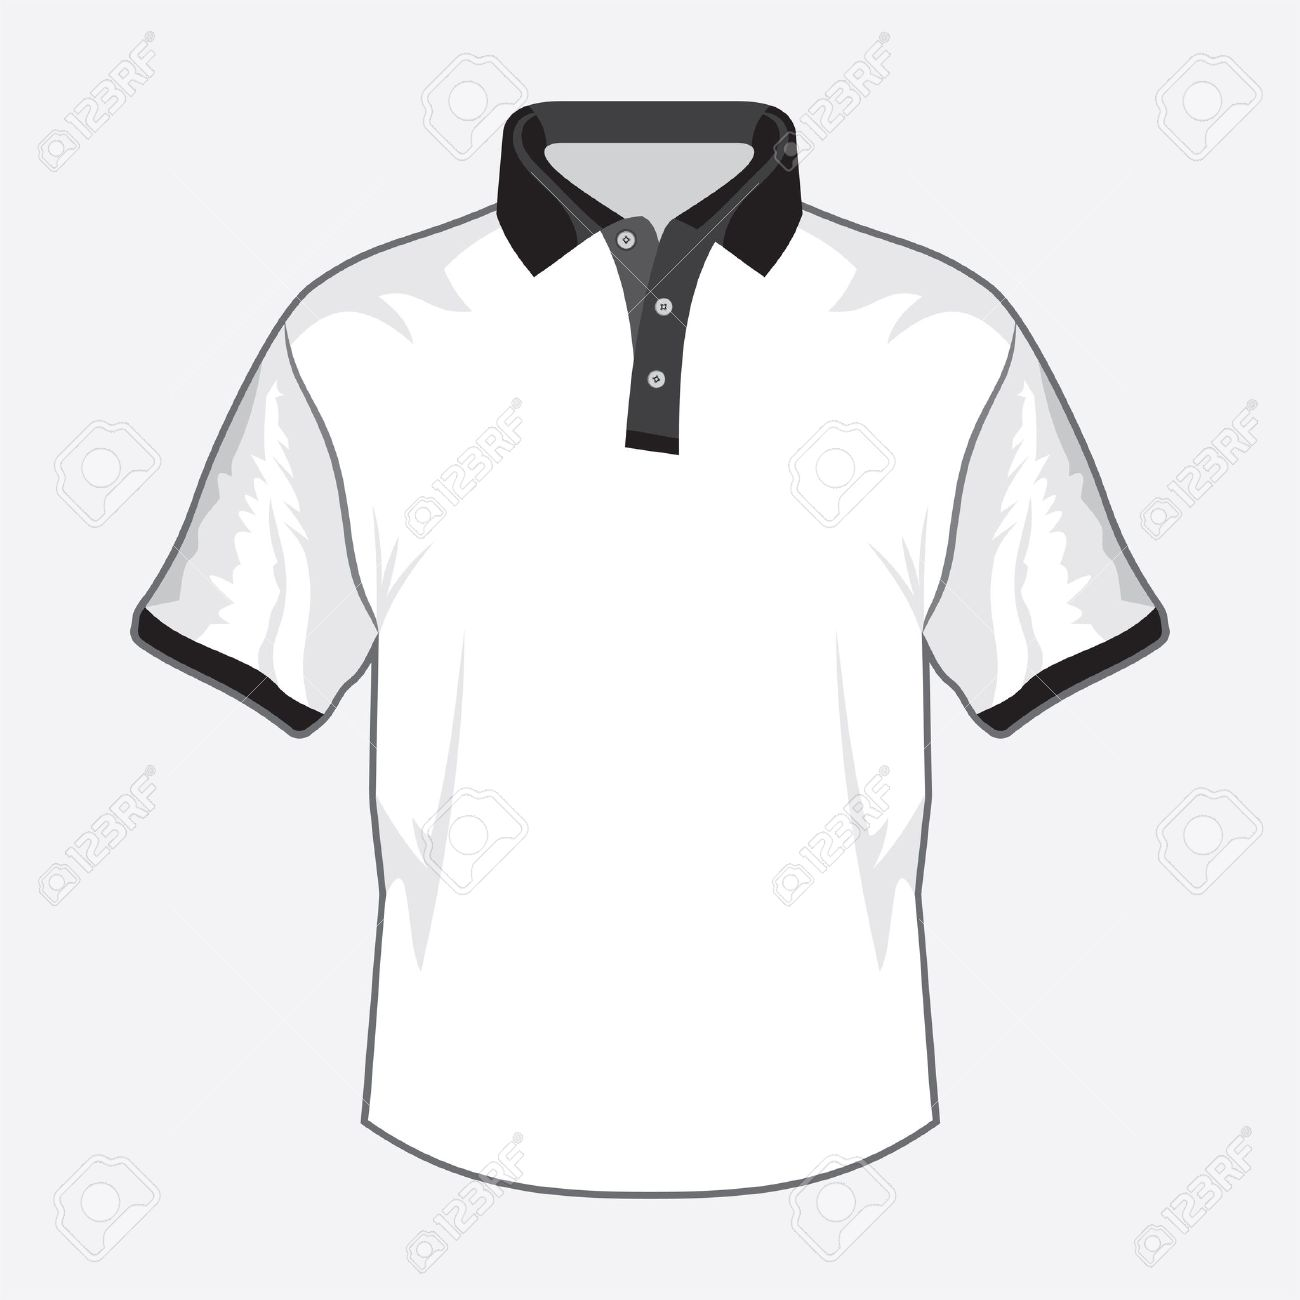 Shirt design black